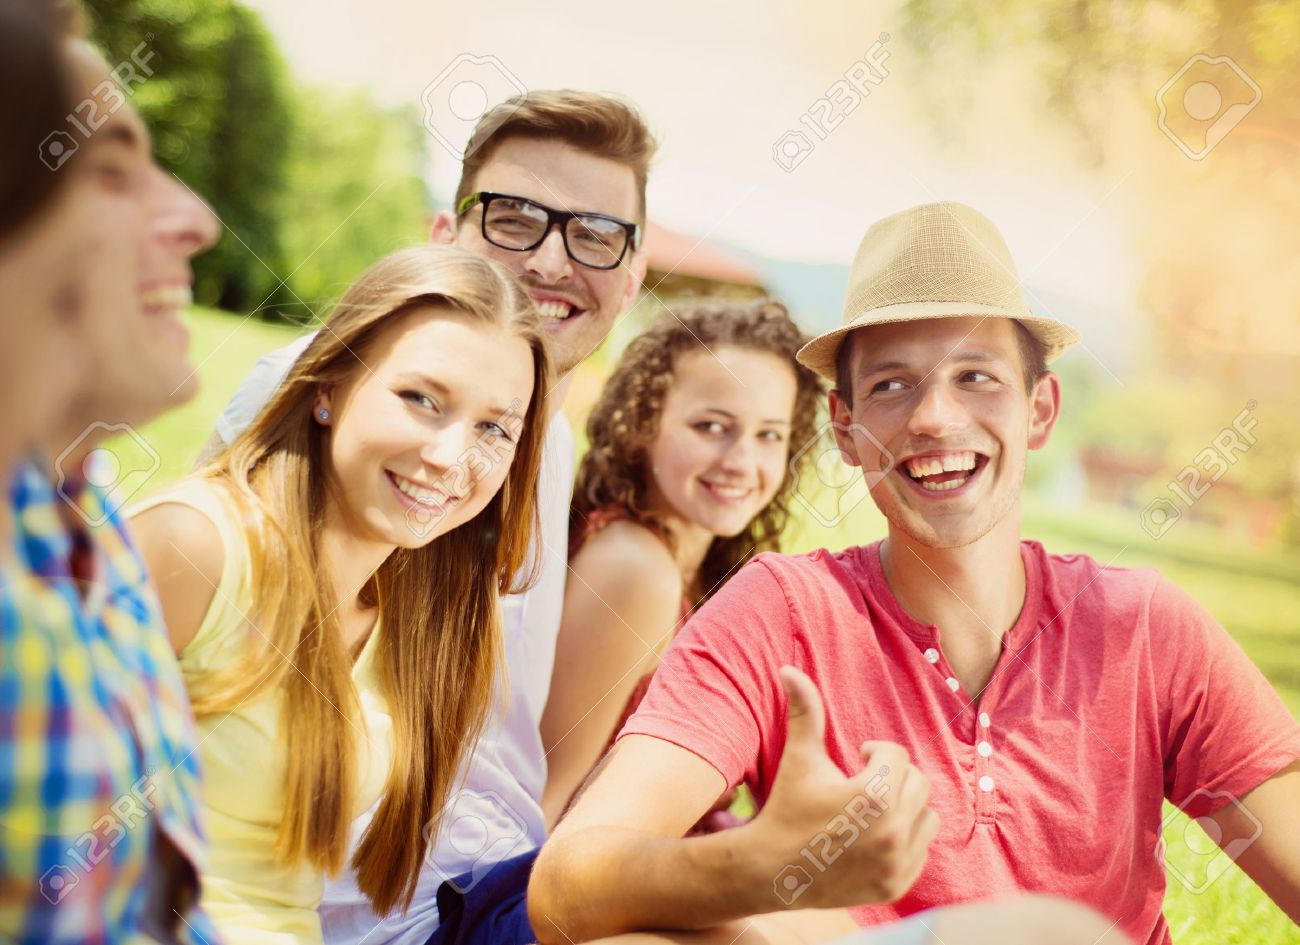 group of young people having fun in park sitting on the grass stock